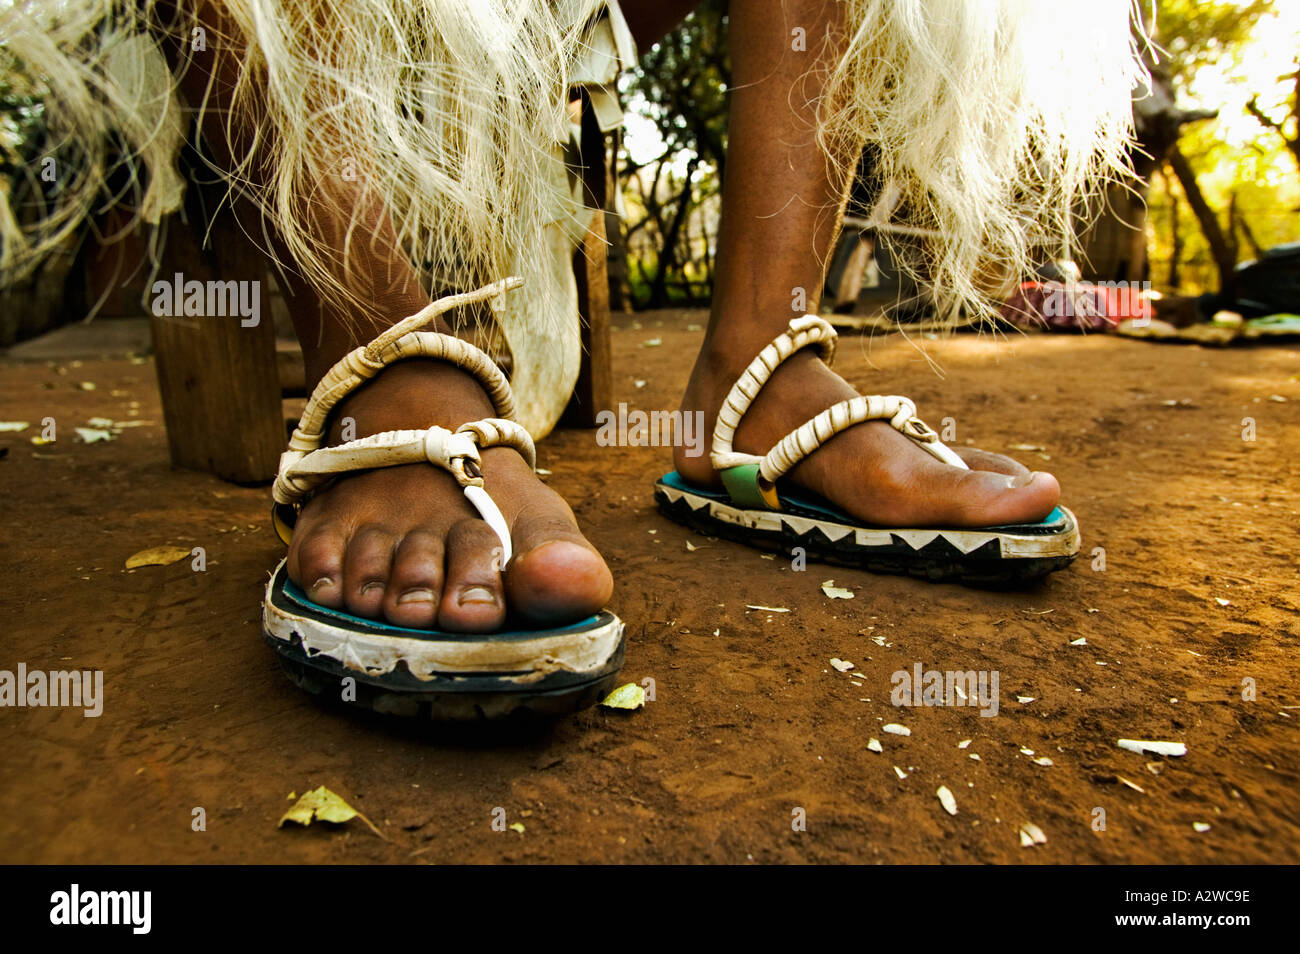 People Zulu Man In Traditional Dress With Sandals Made